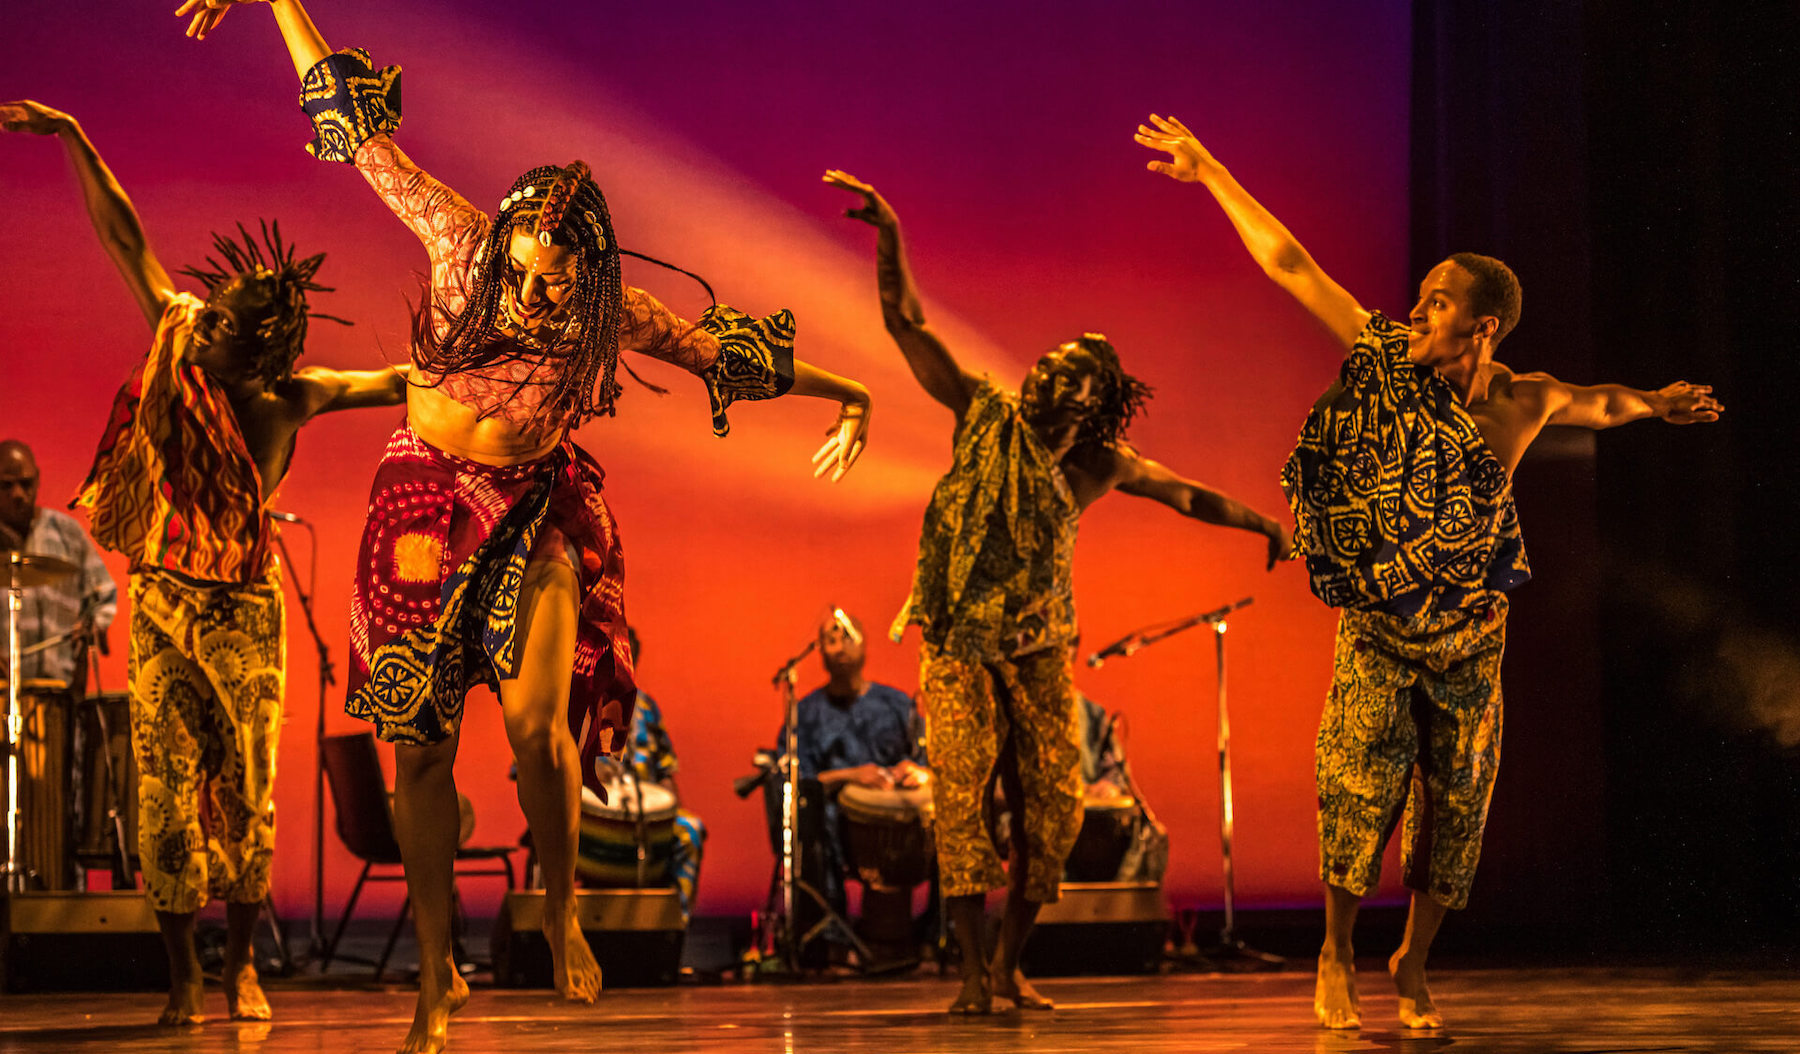 From left: Dancers Kwasi Obeng-Adjei, Lua Shayenne, Kahamilou Zongo and Shakeil Rollock of Lua Shayenne Dance Company perform KIRA, The Path | La Voie, presented during the Luminato Festival at the Fleck Dance Theatre in Toronto. (Photo: Dahlia Katz)